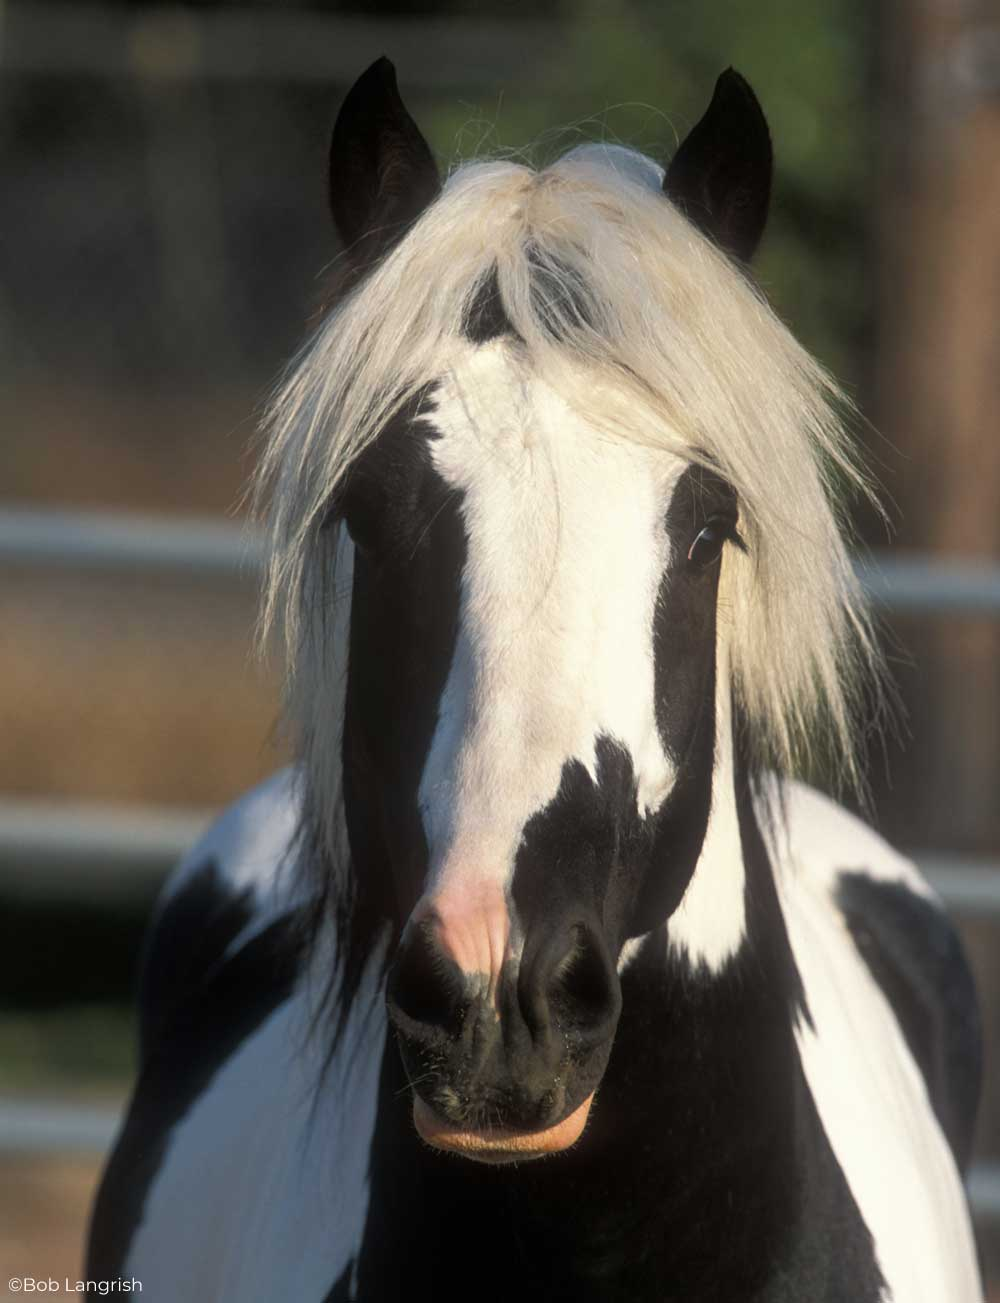 Headshot of a black and white Gypsy Horse